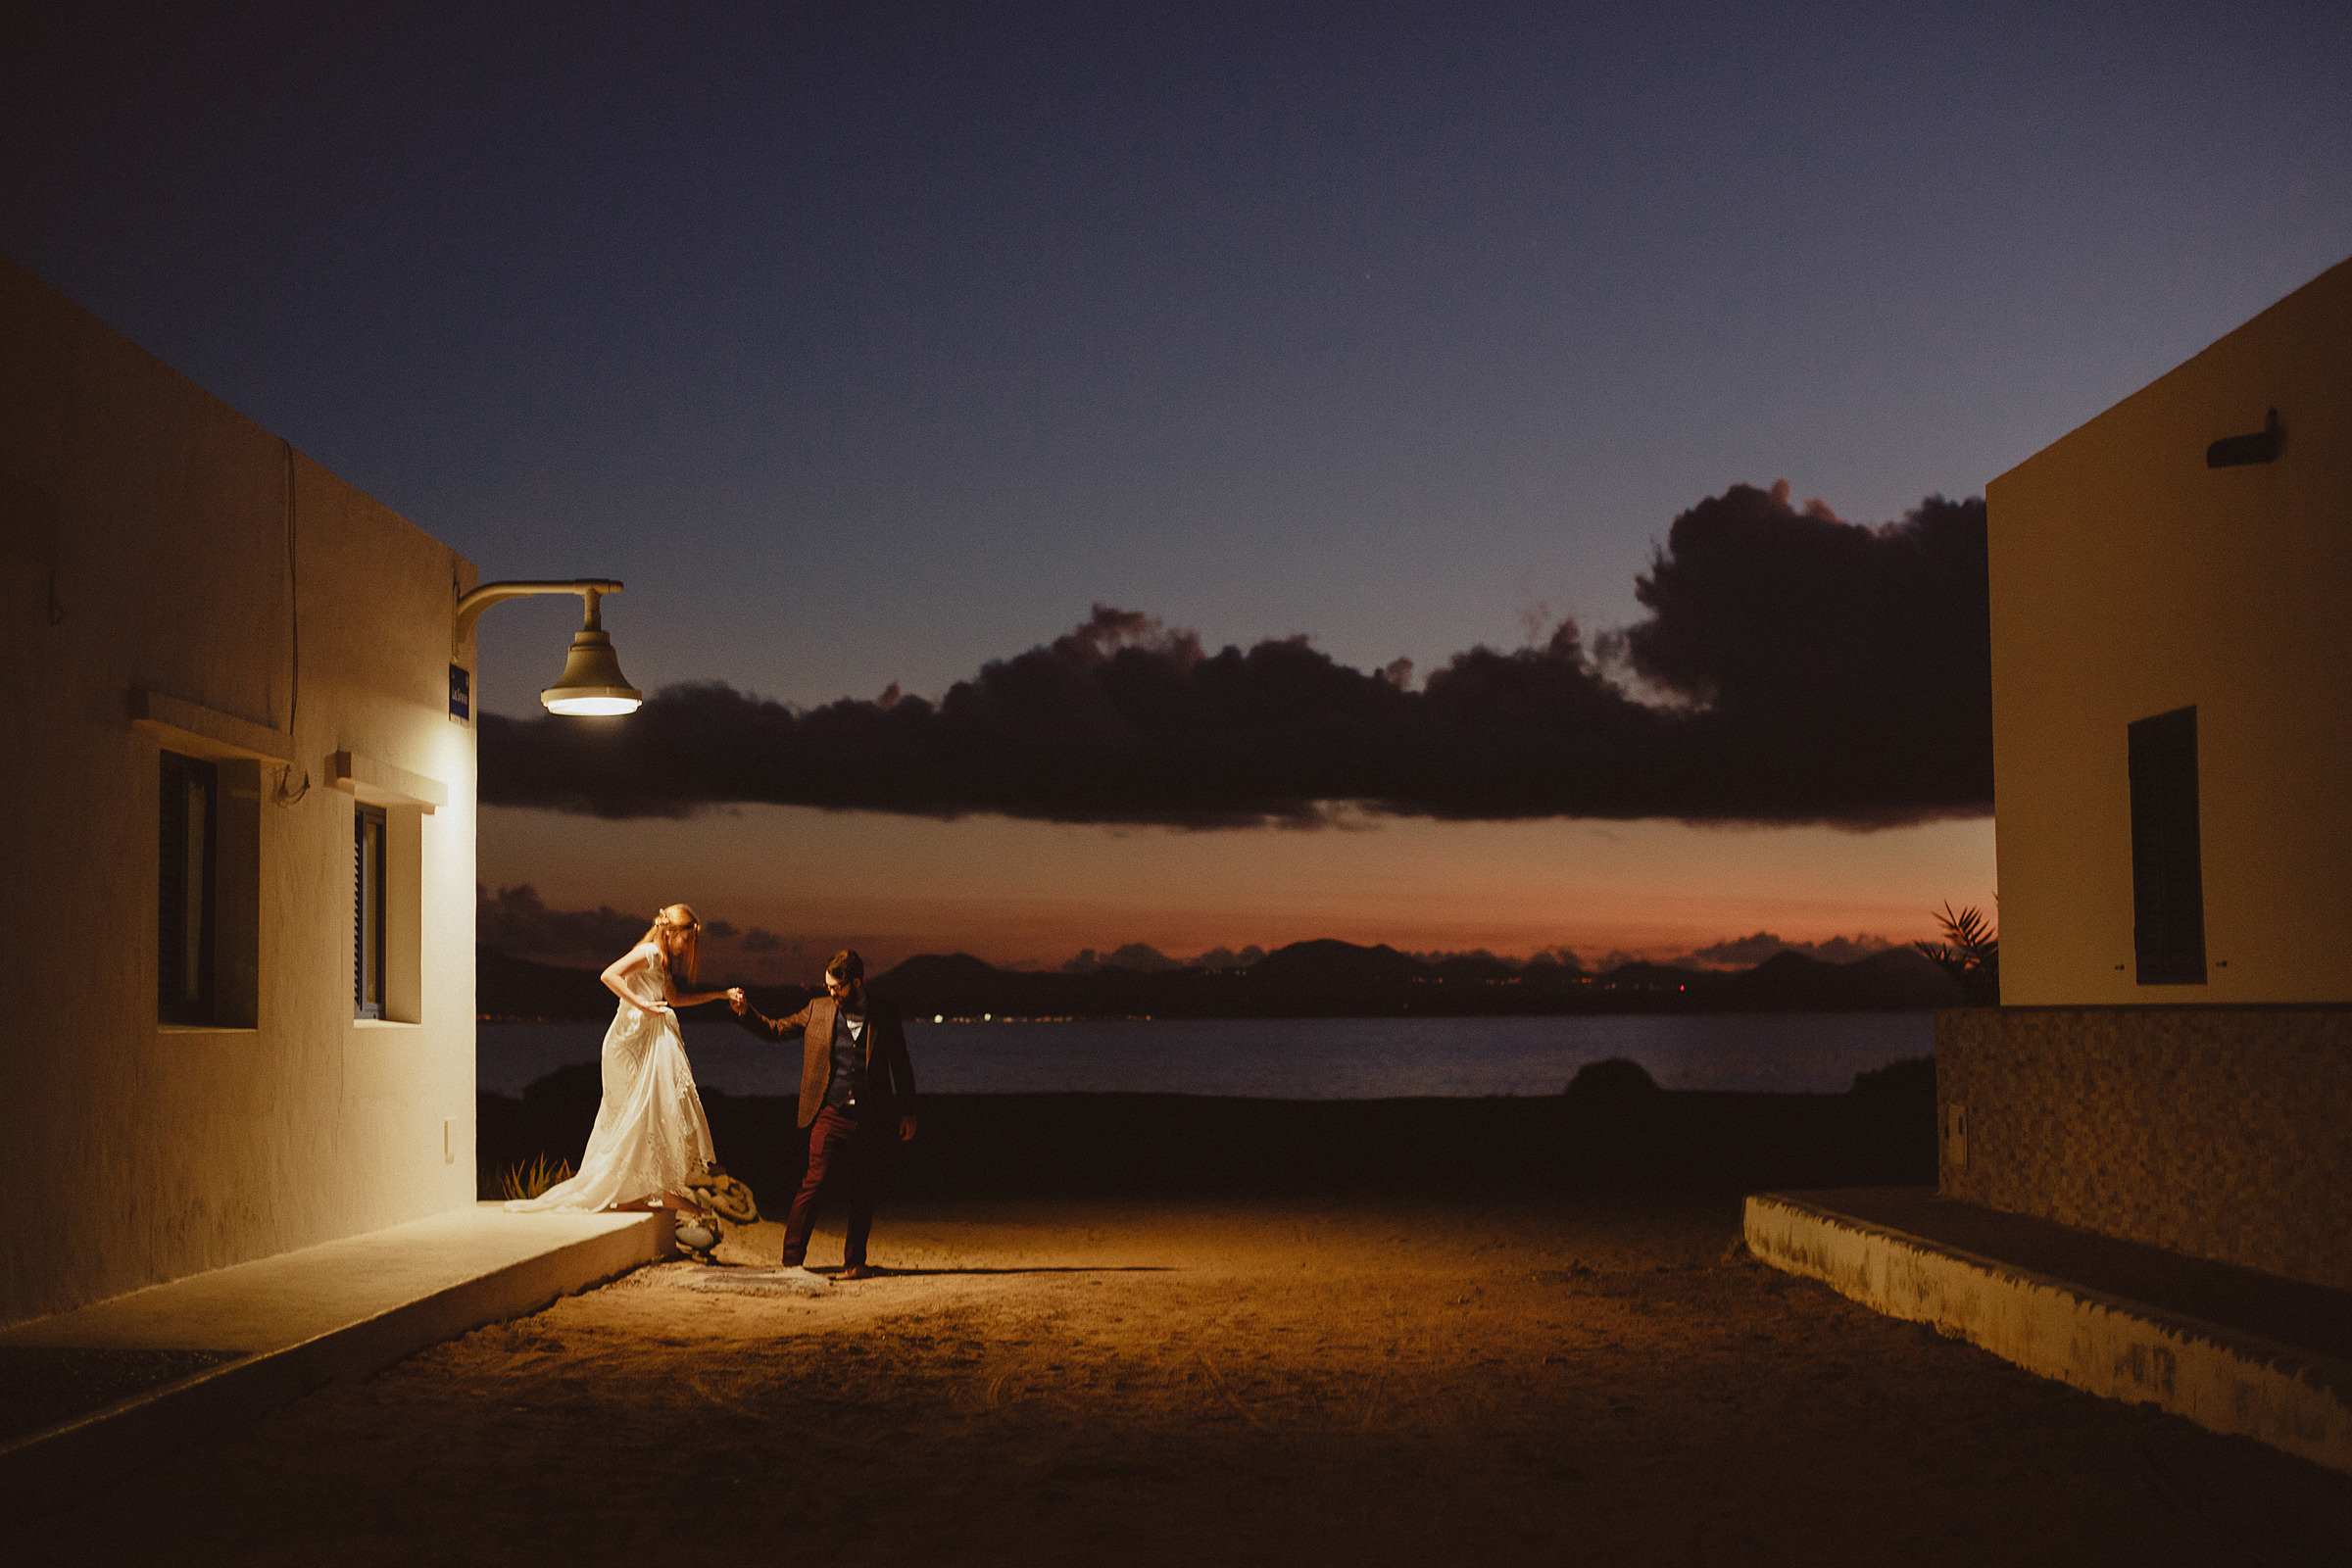 Couple portrait against adobe and sunset sky - photo by Ed Peers Photography